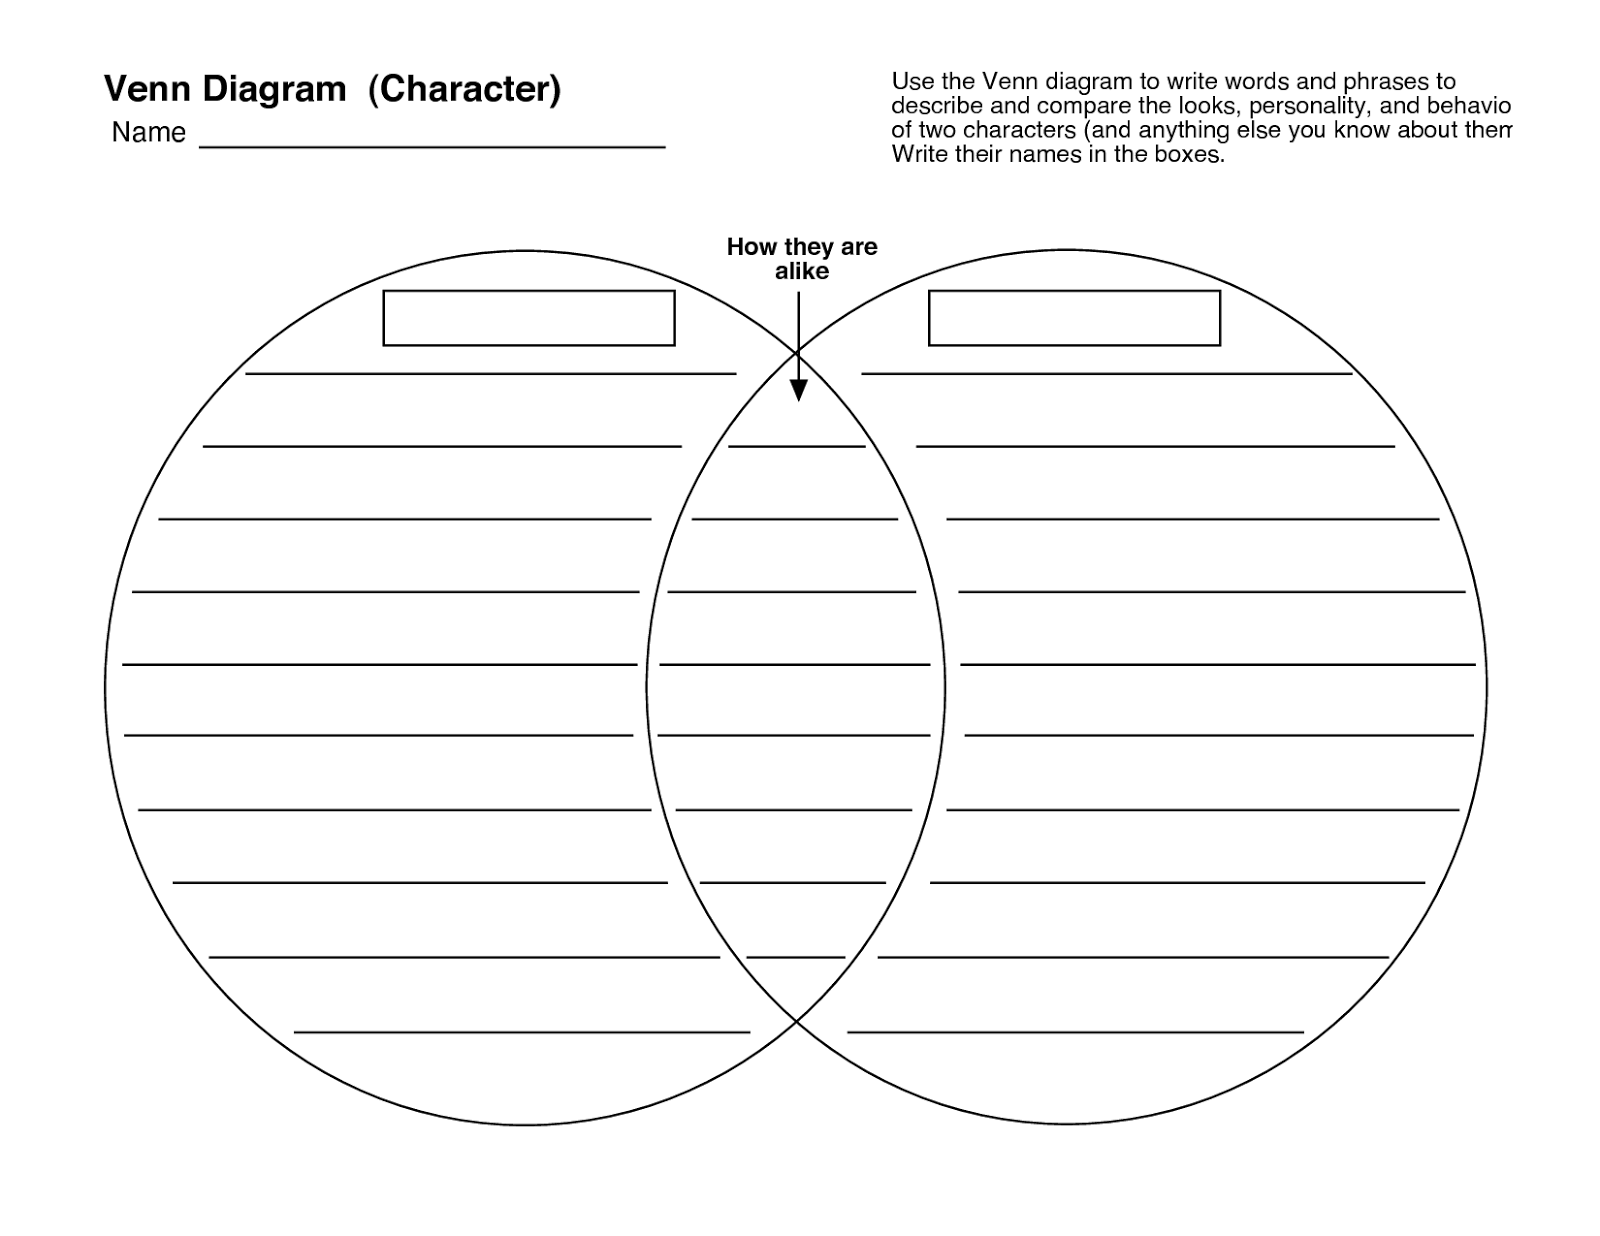 venn diagram 5 circles template - venn diagram maker for kids venn get free image about